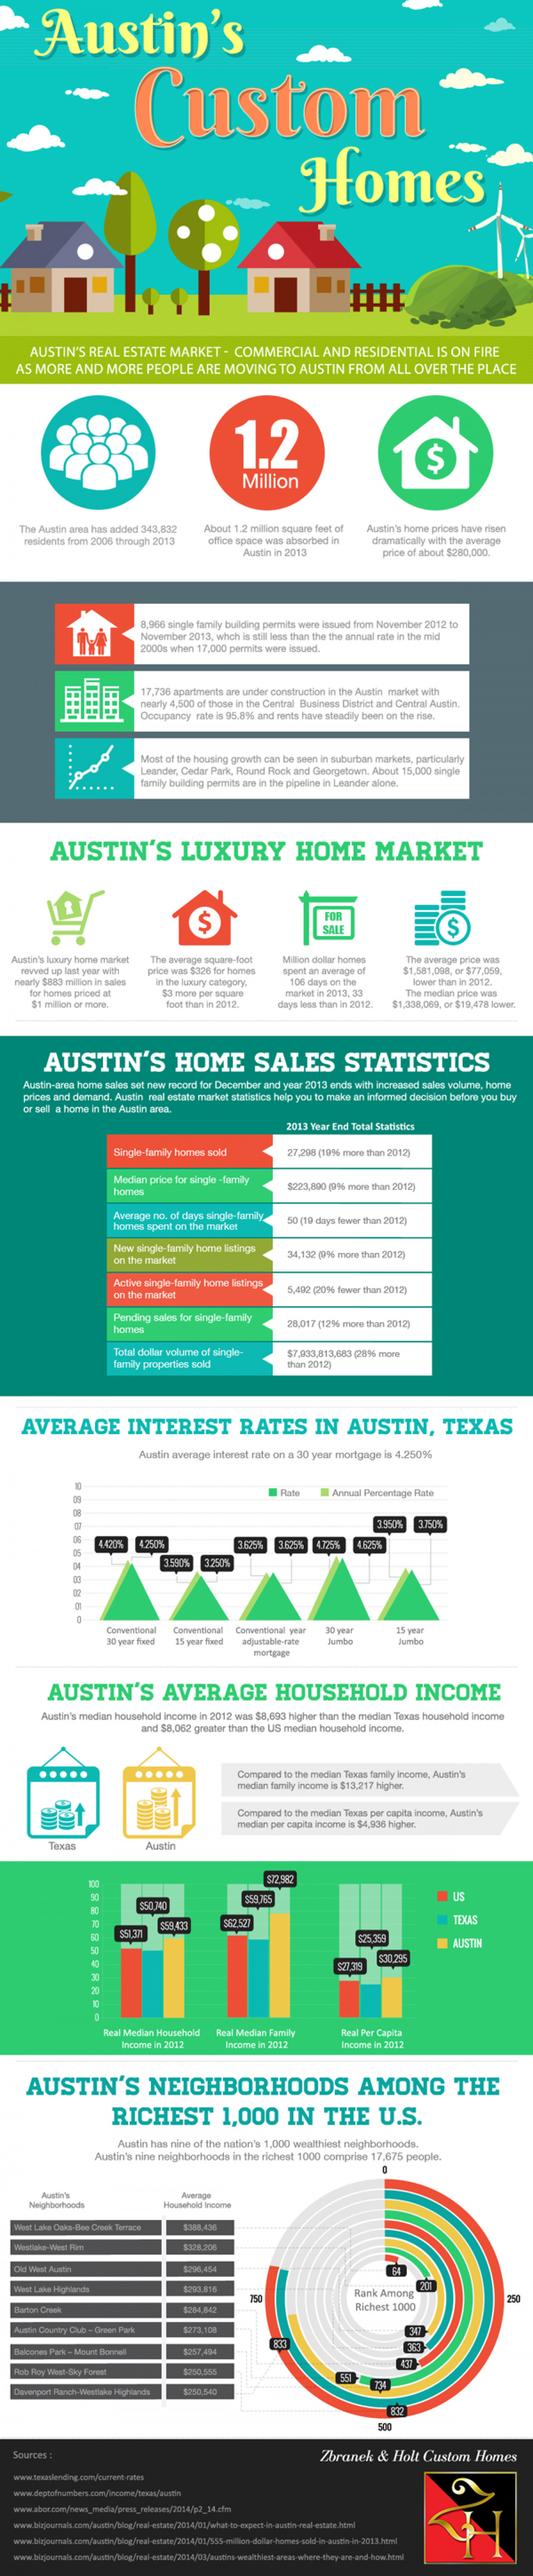 Austin's Custom Homes Infographic